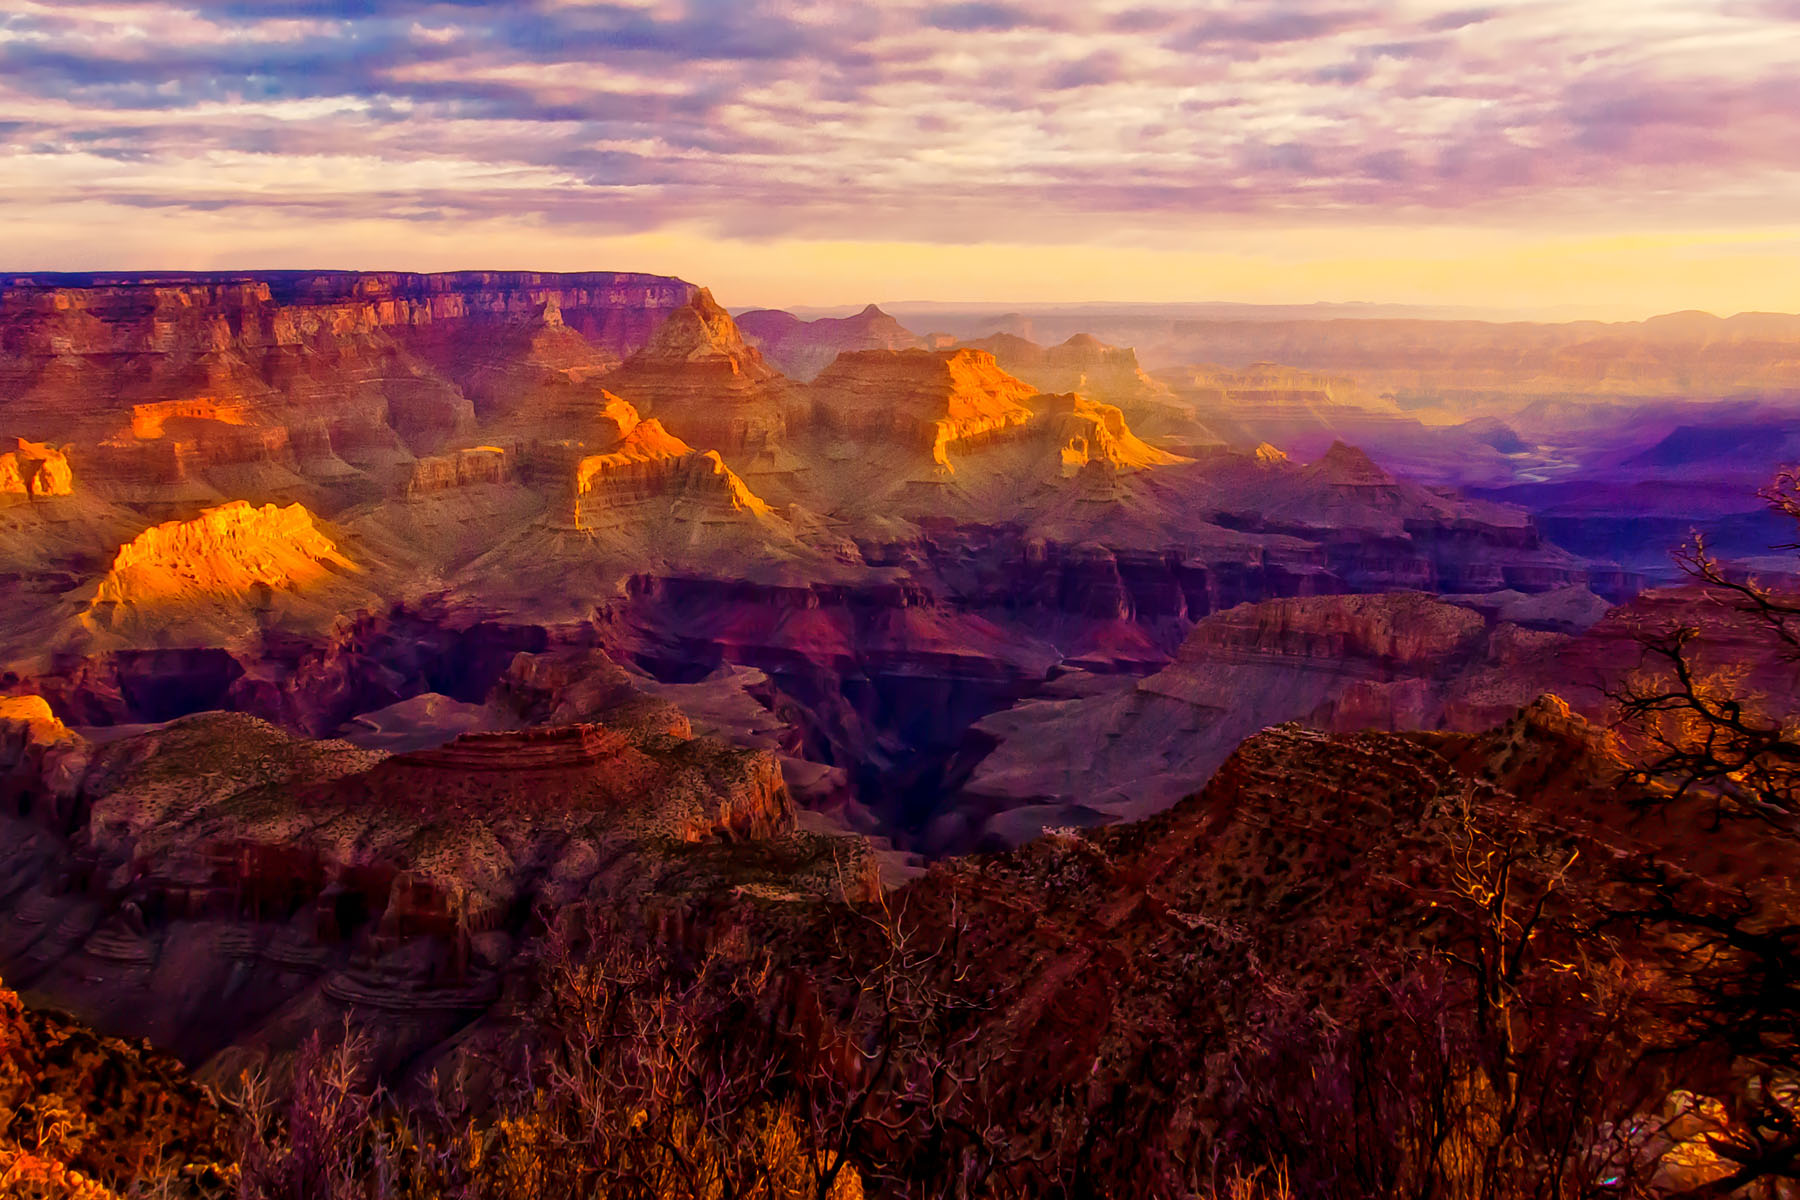 MORNING AT THE CANYON - Just another morning at the Grandest of all canyons.